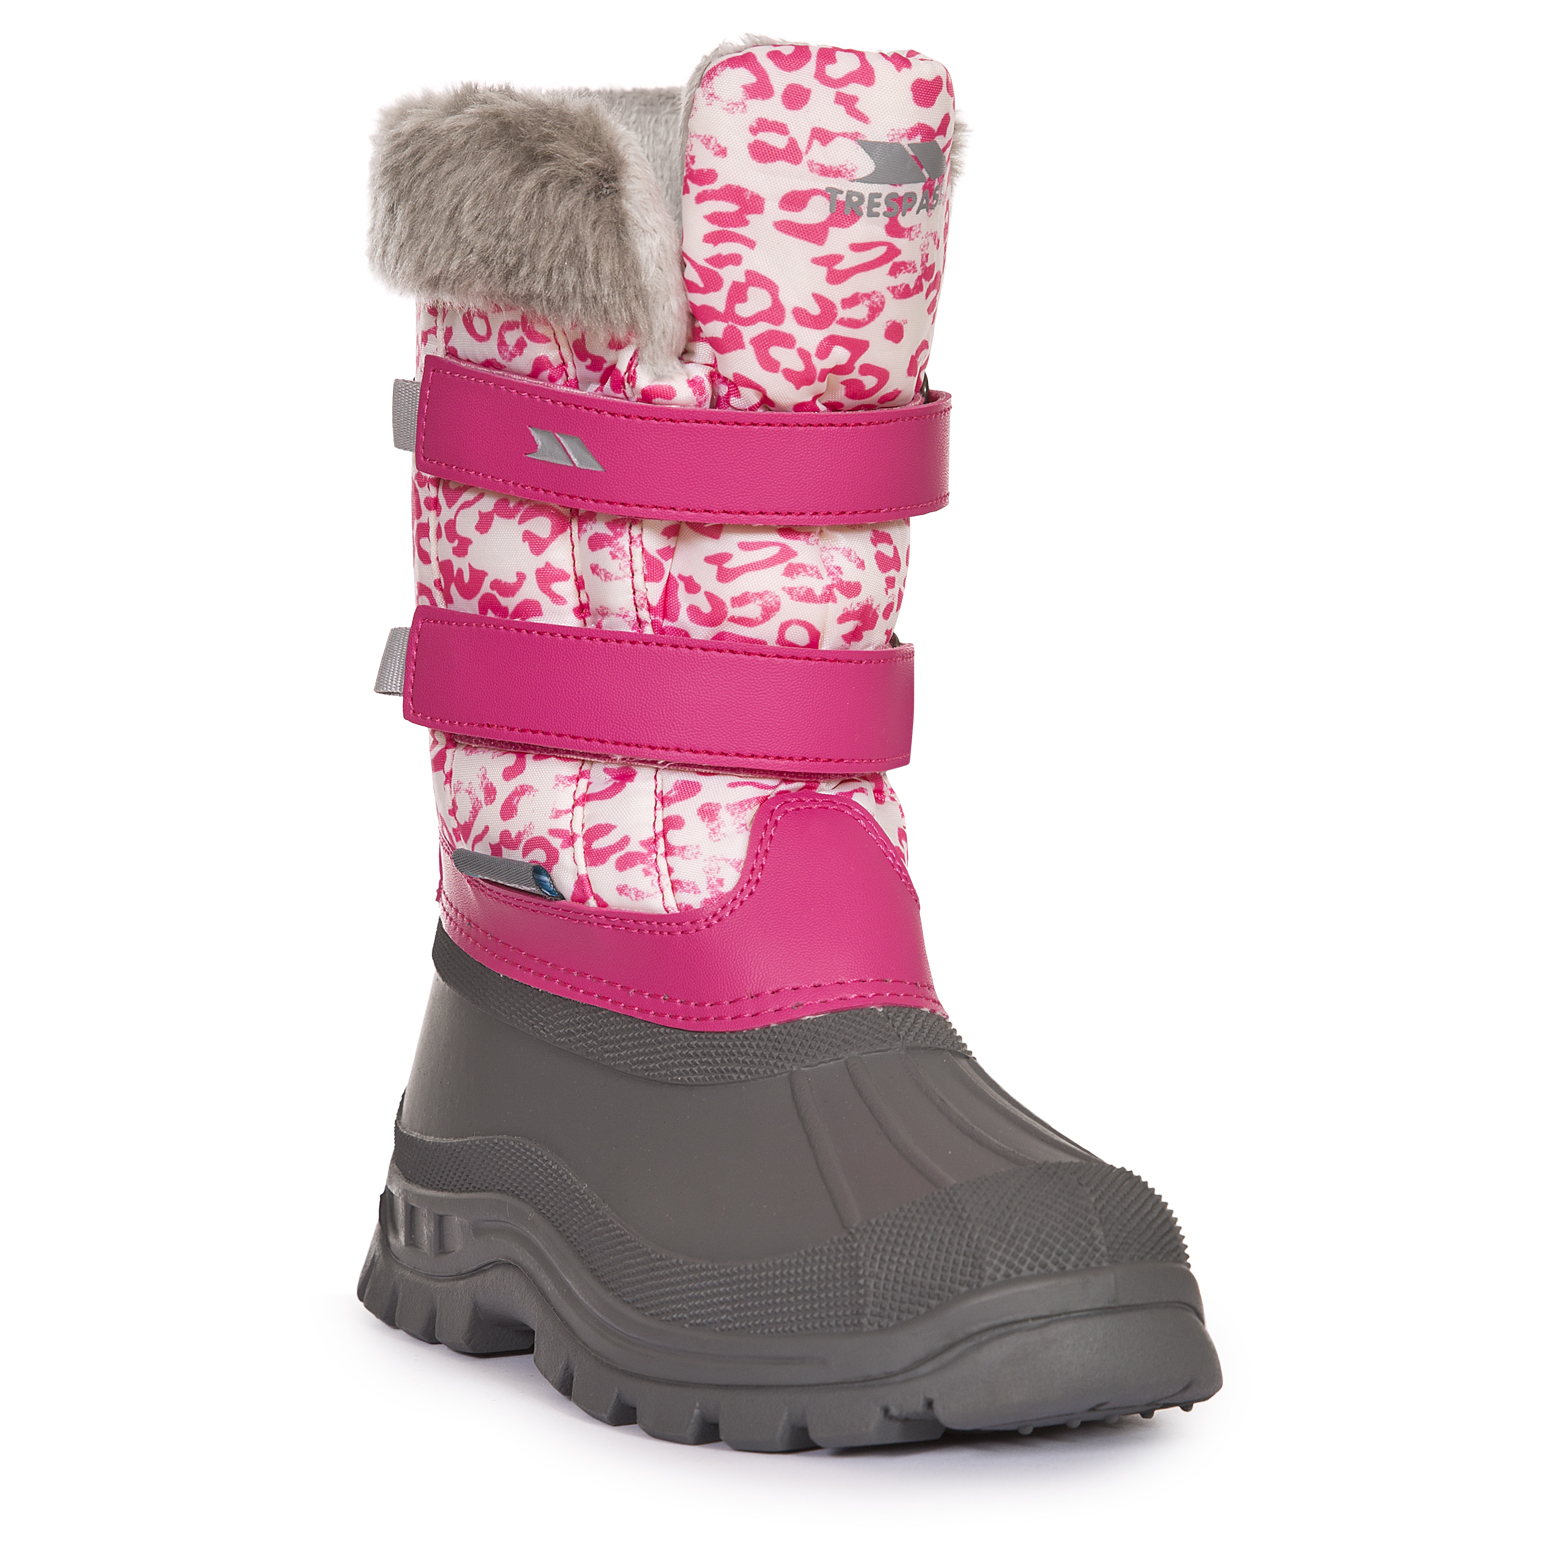 Trespass Vause Kids Insulated Snow Boots Warm Winter Shoes for Girls Boys